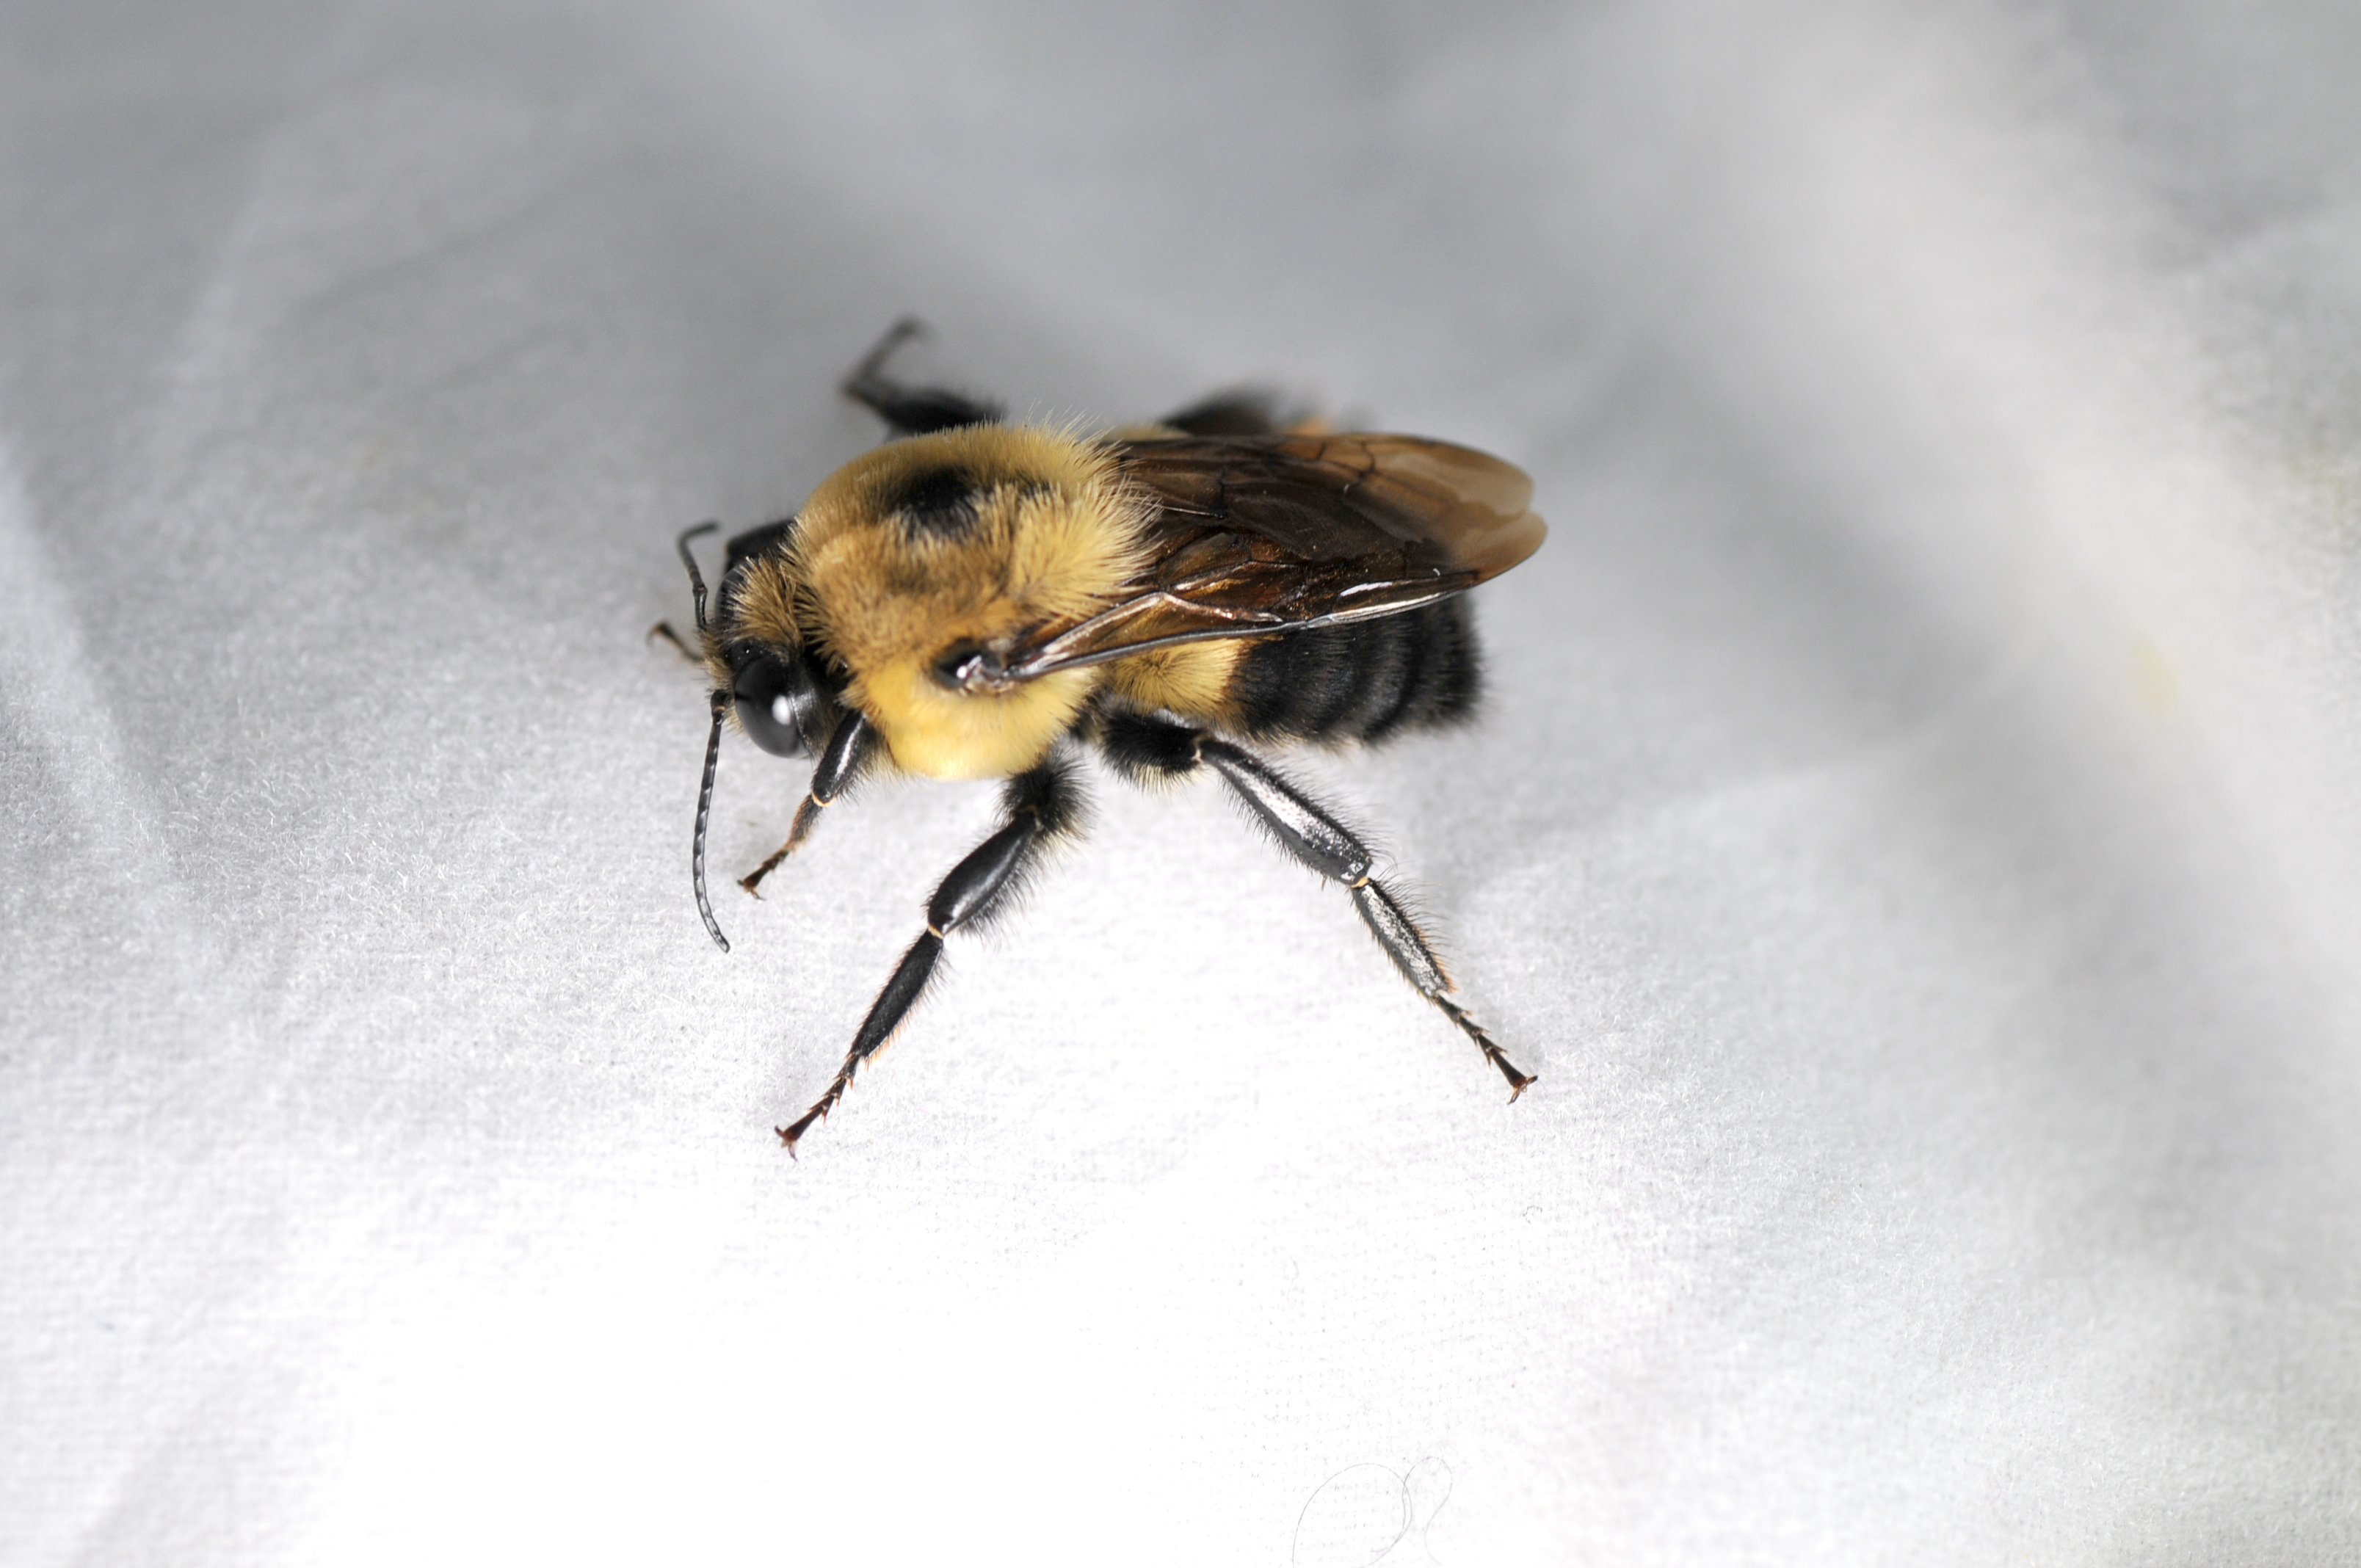 Bumblebee (male - look for large eyes/long antenna)